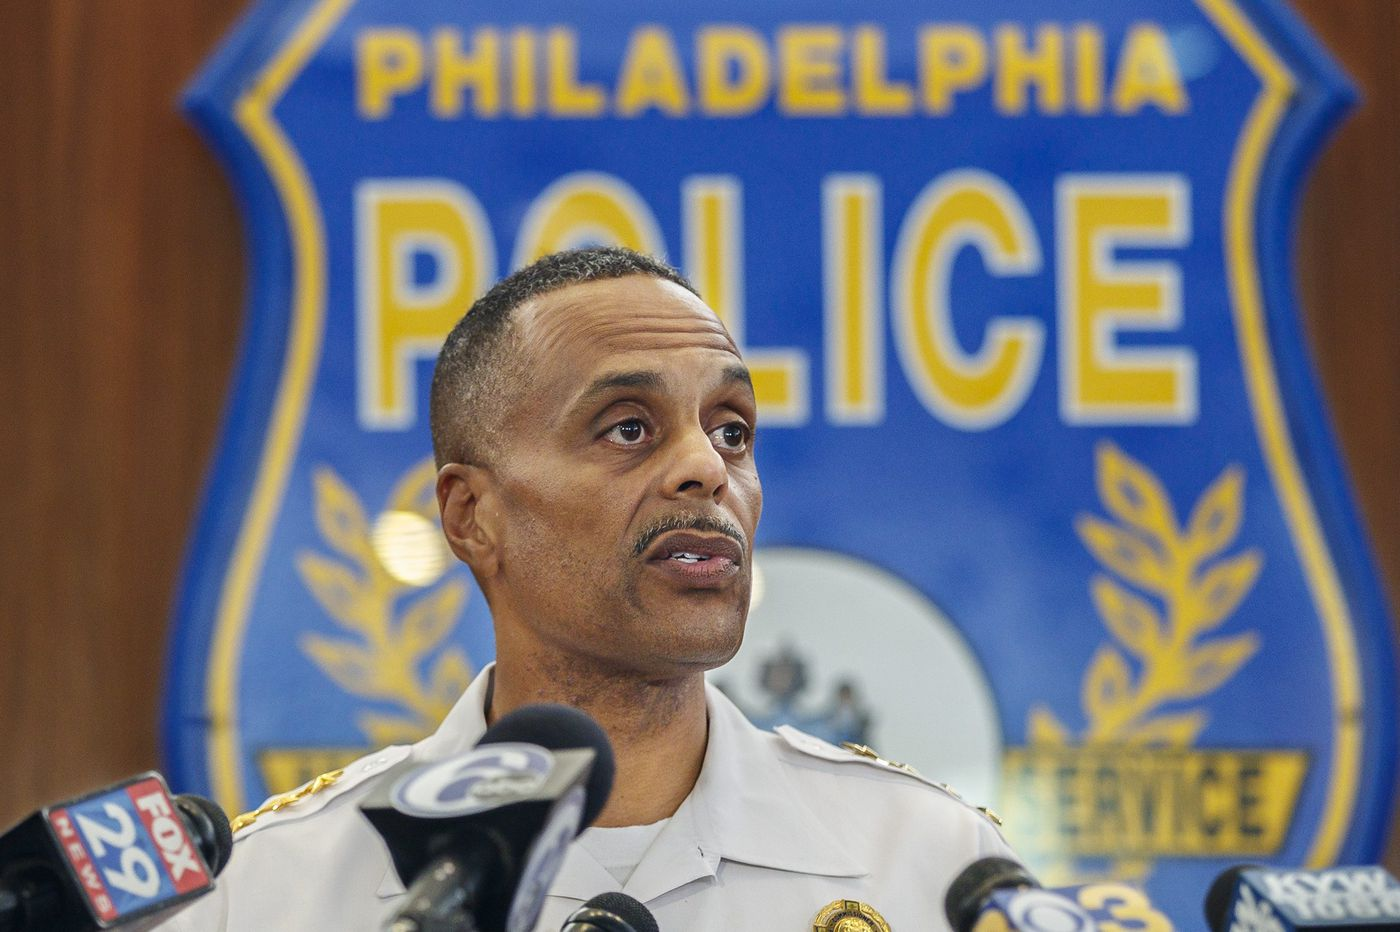 Starbucks report says racism affects policing. Police disagree. | Editorial